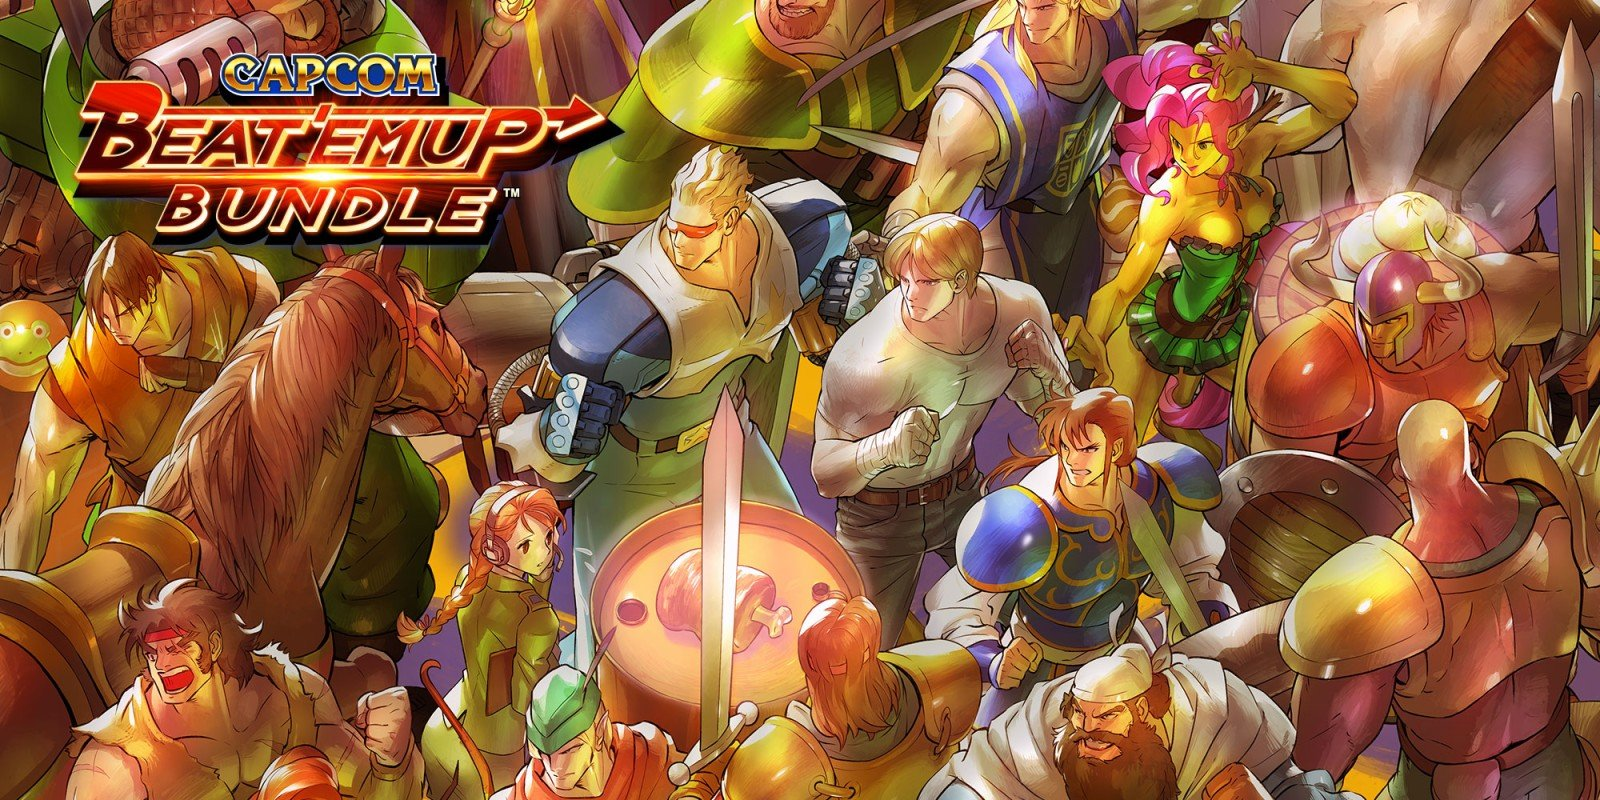 The Capcom Beat 'Em Up Bundle gets smacked with a delay on PC screenshot